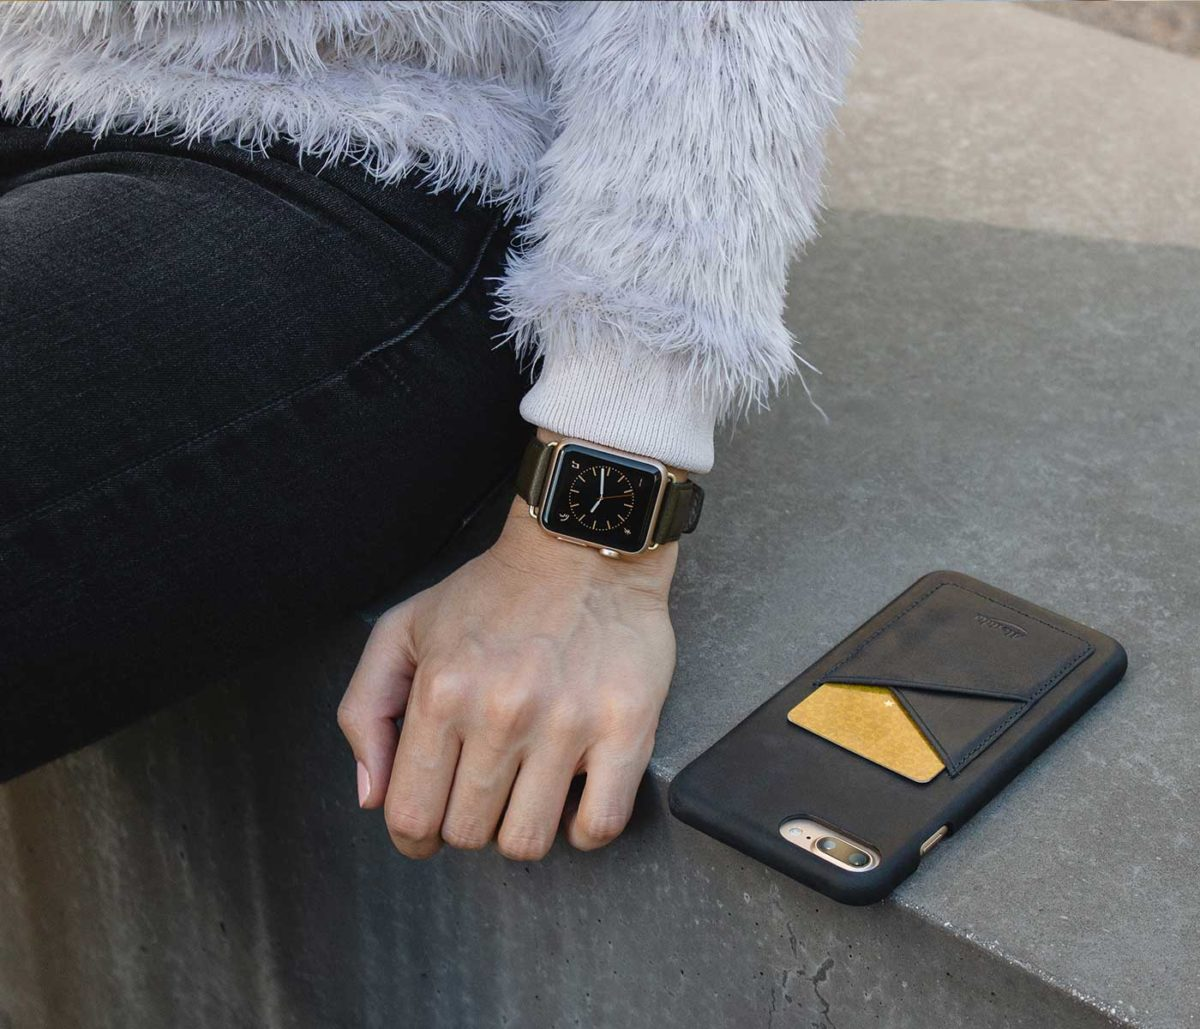 Musk-Apple-watch-nappa-green-leather-bans-with-a-female-denim-outfit-bs